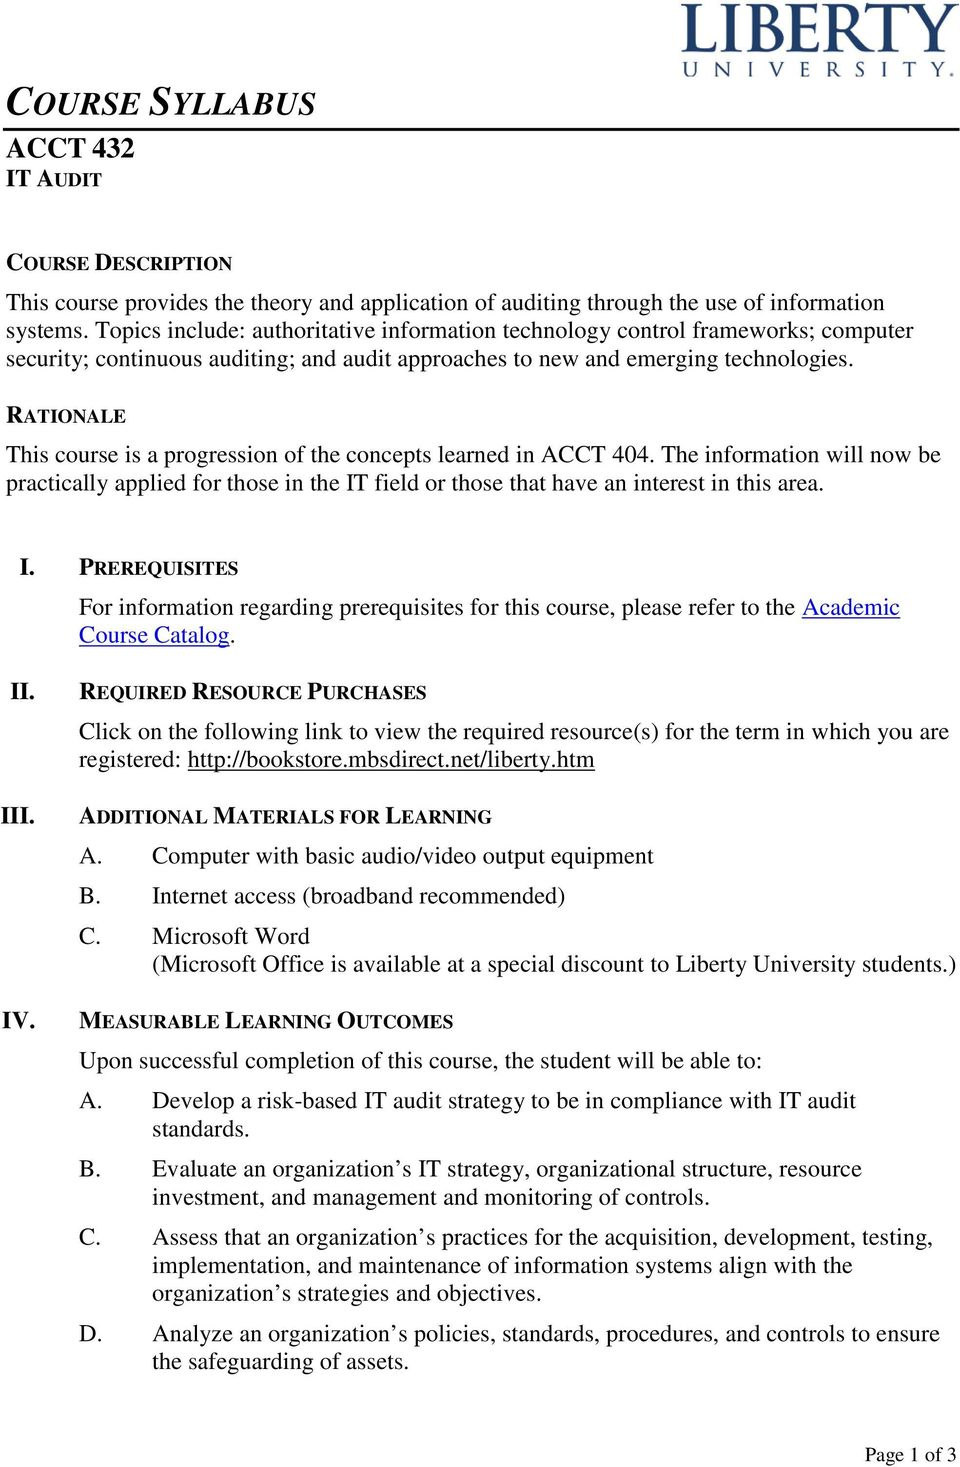 RATIONALE This course is a progression of the concepts learned in ACCT 404. The information will now be practically applied for those in the IT